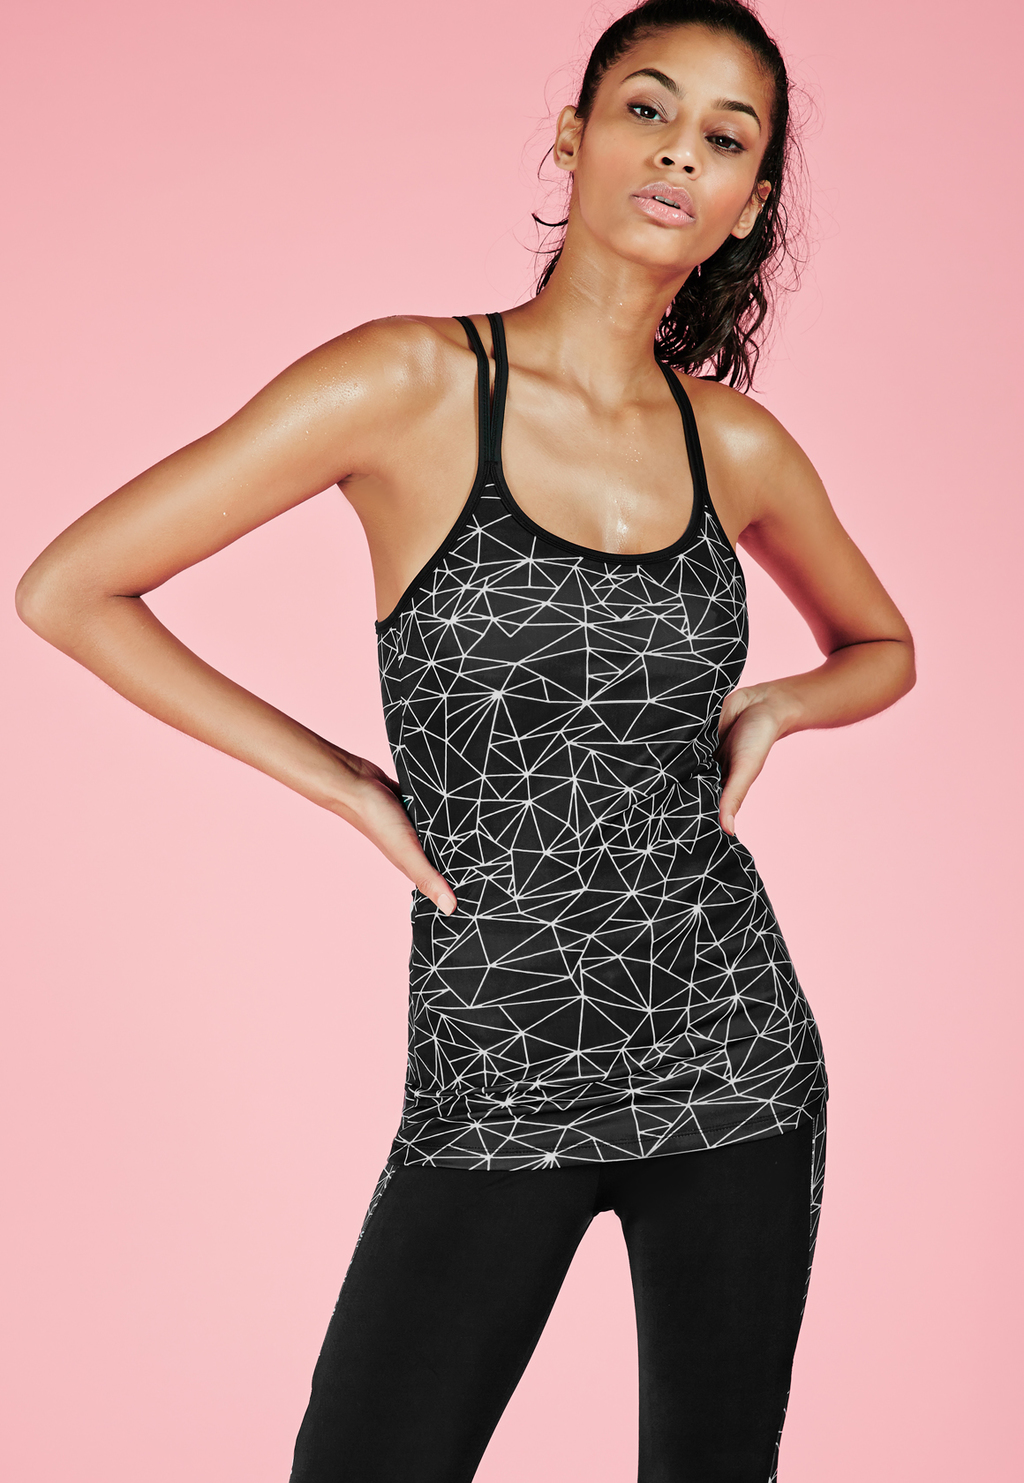 Active Monochrome Print Racer Back Gym Vest Black, Black - sleeve style: spaghetti straps; style: vest top; predominant colour: black; occasions: casual, activity; length: standard; neckline: scoop; fibres: polyester/polyamide - stretch; fit: body skimming; sleeve length: sleeveless; trends: monochrome; pattern type: fabric; pattern: patterned/print; texture group: jersey - stretchy/drapey; pattern size: big & busy (top); season: a/w 2015